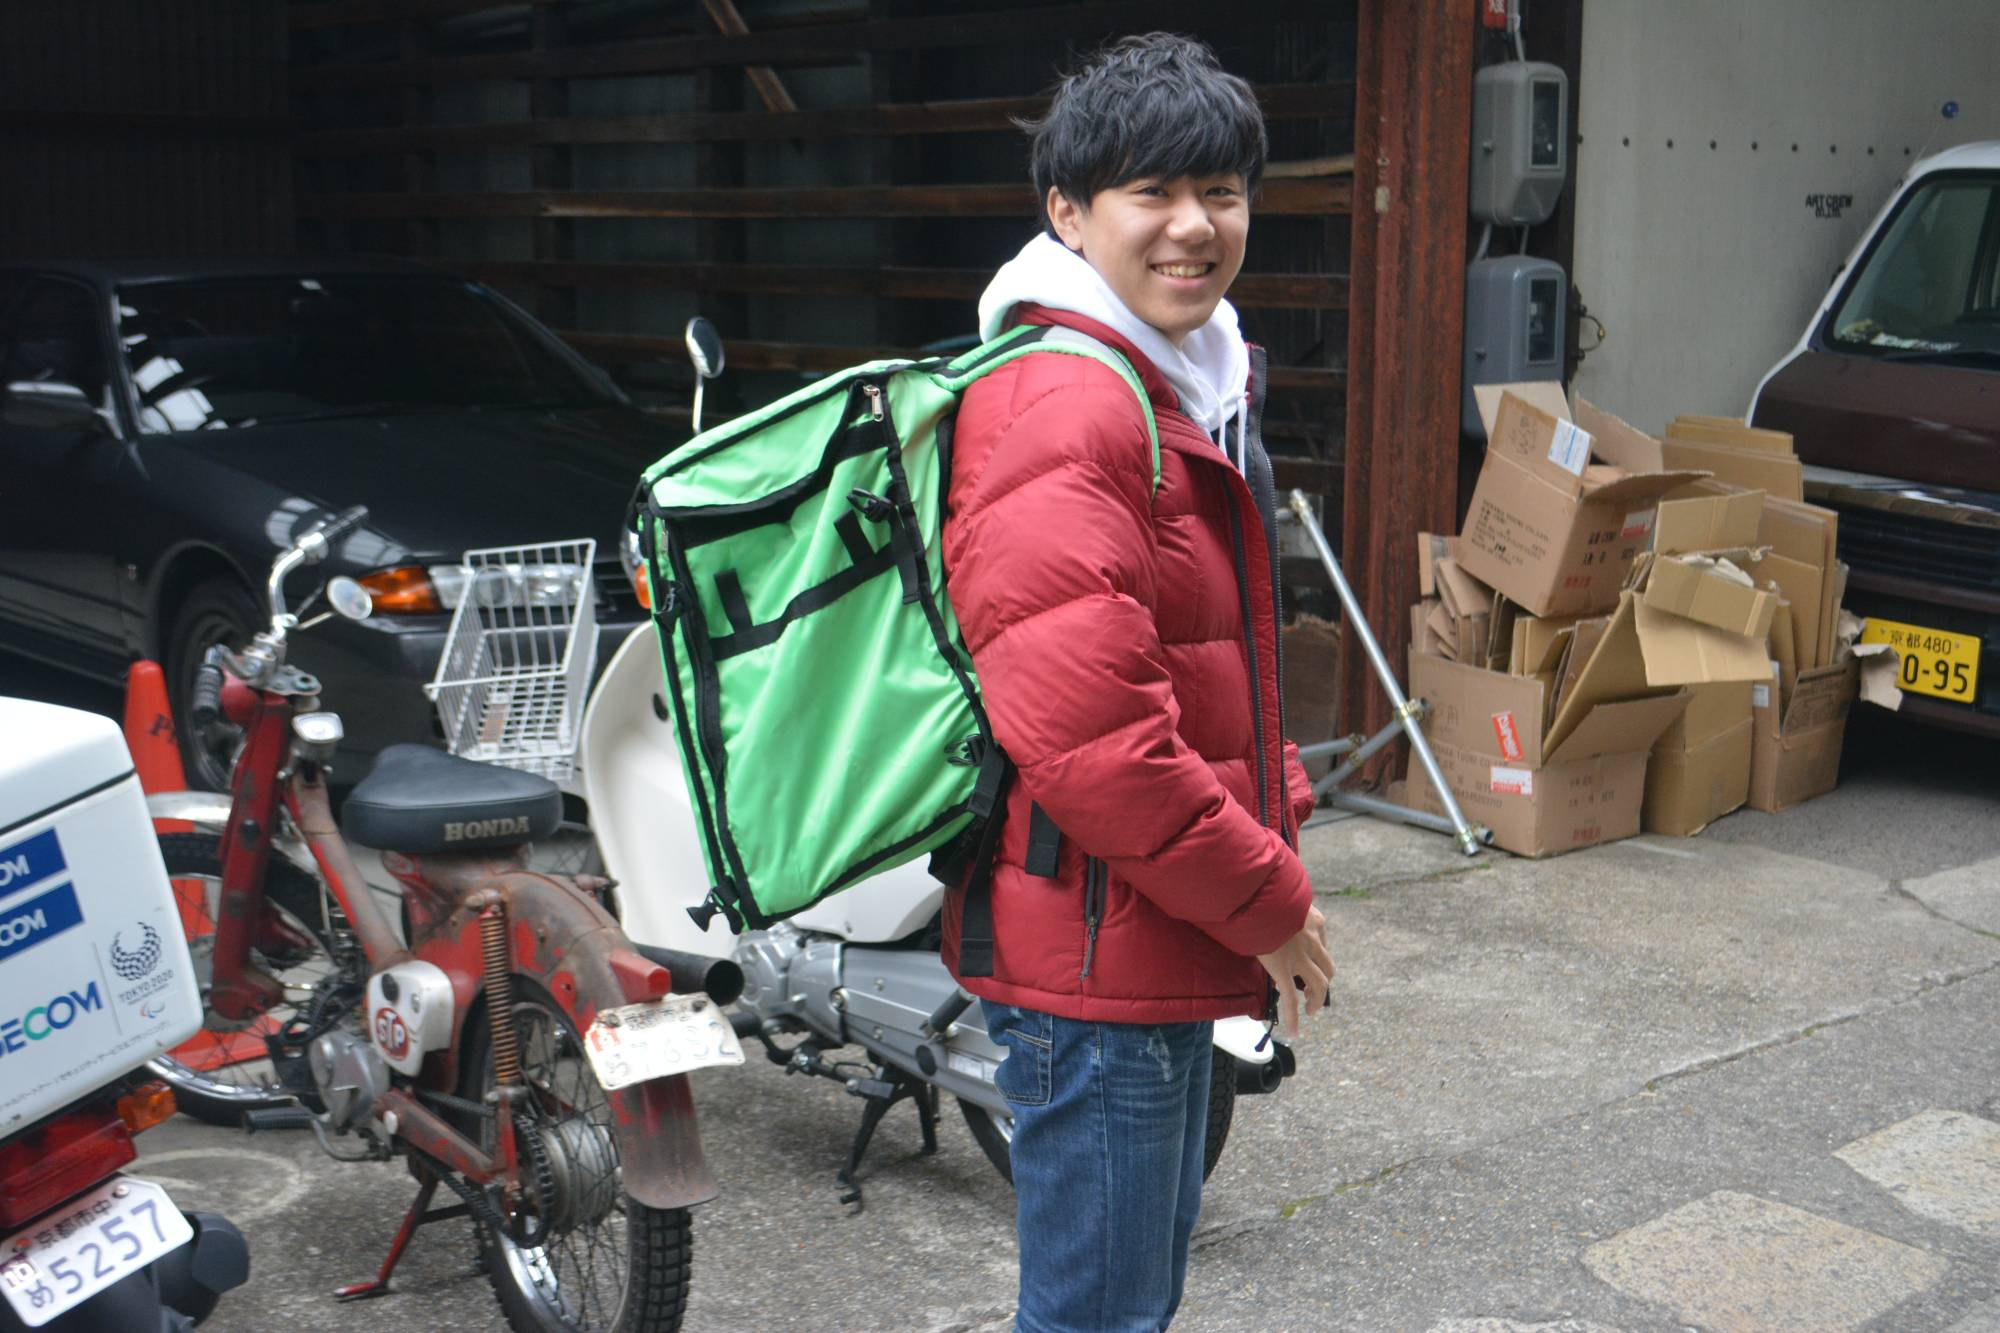 Gig economy: University student Yuya Suzuki started delivering for Uber Eats during the pandemic when the cram school he worked at shut down. | J.J. O'DONOGHUE